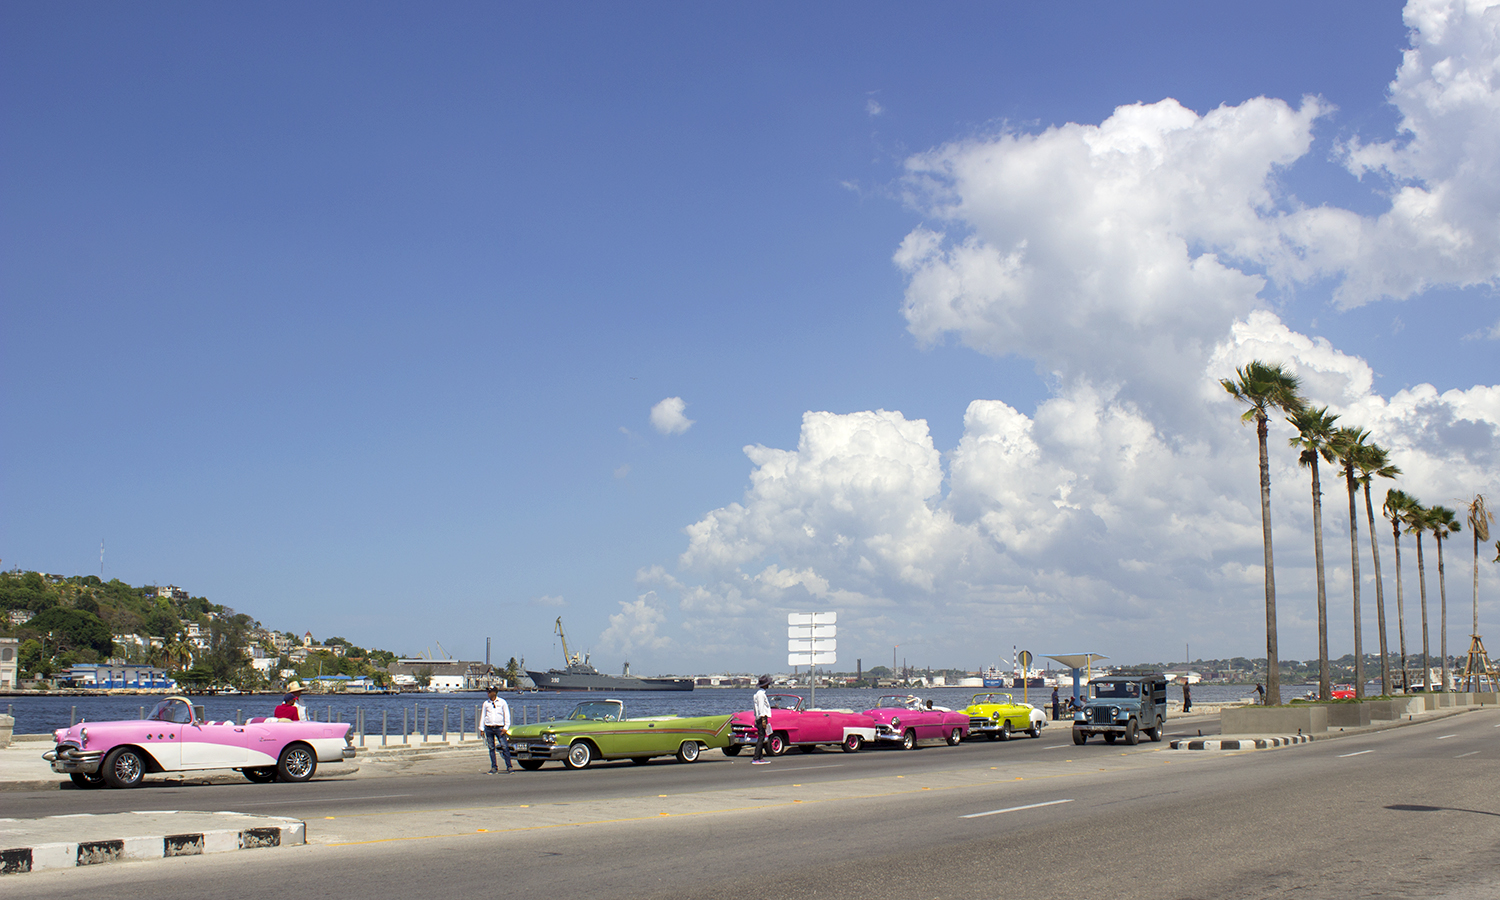 Taxi's wait for passengers on the Malecón in Old Havana.